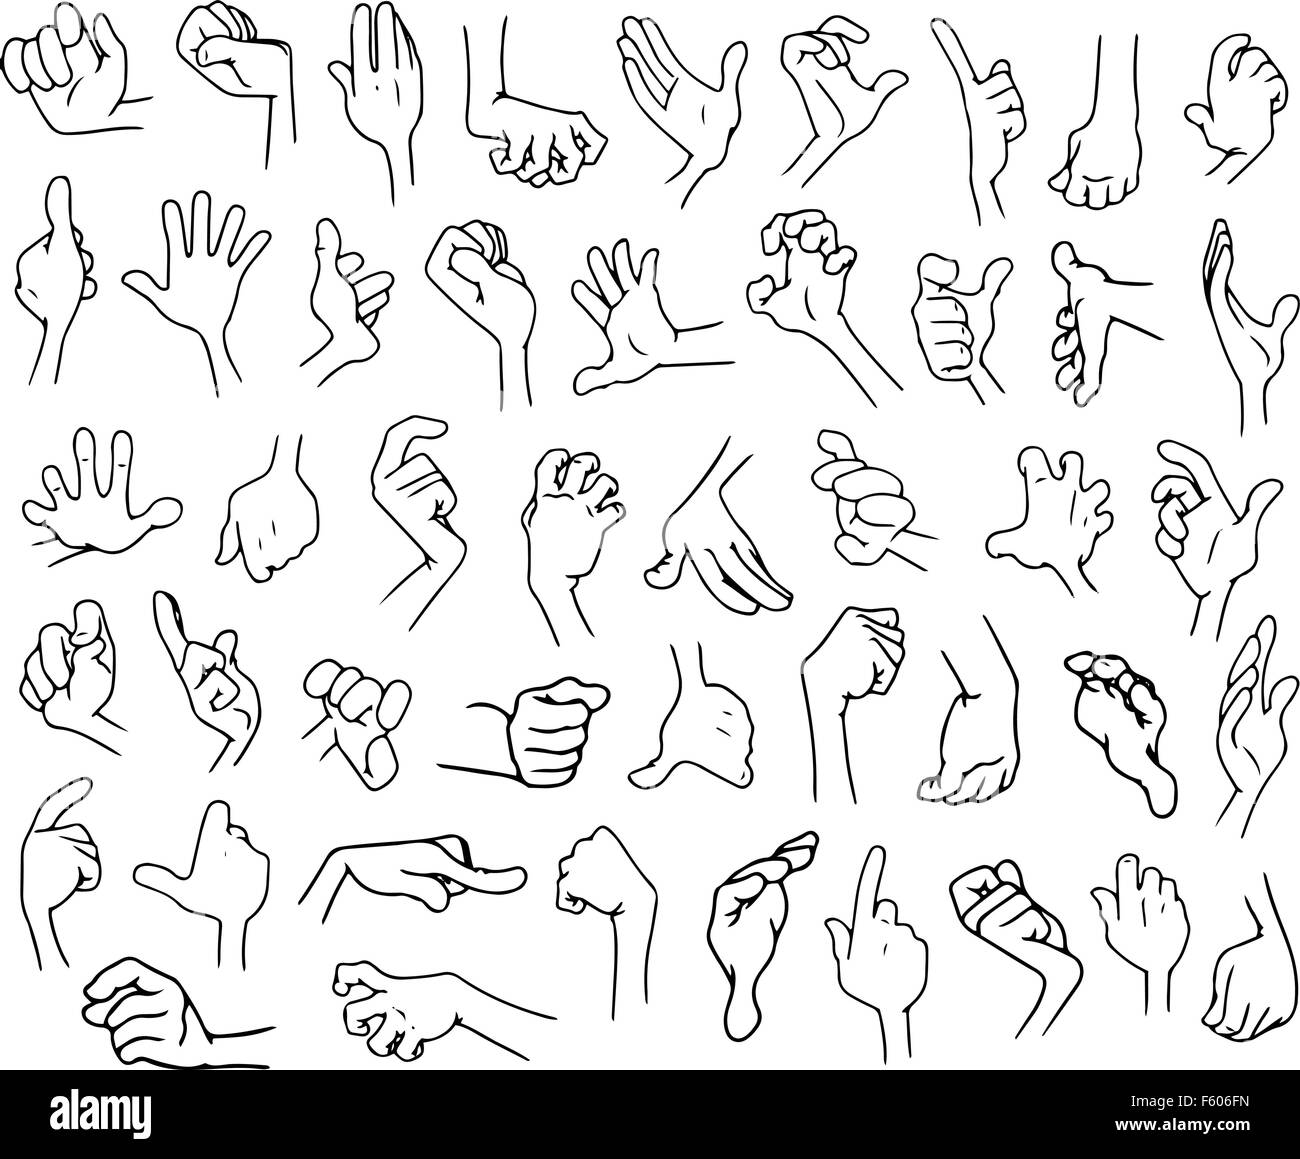 Vector illustrations lineart pack of cartoon hands in various gestures. - Stock Image